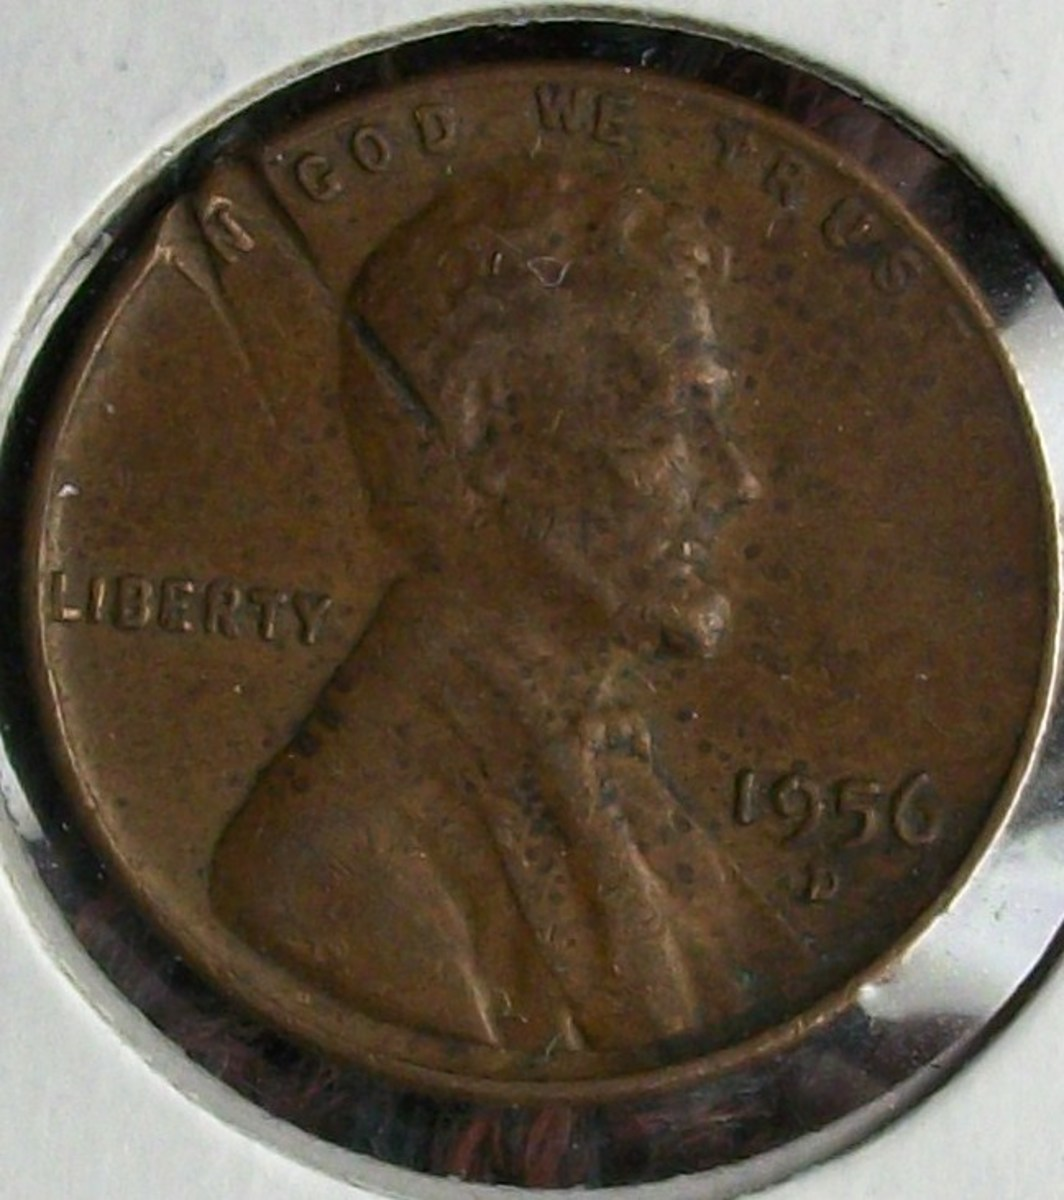 Another Obverse view...